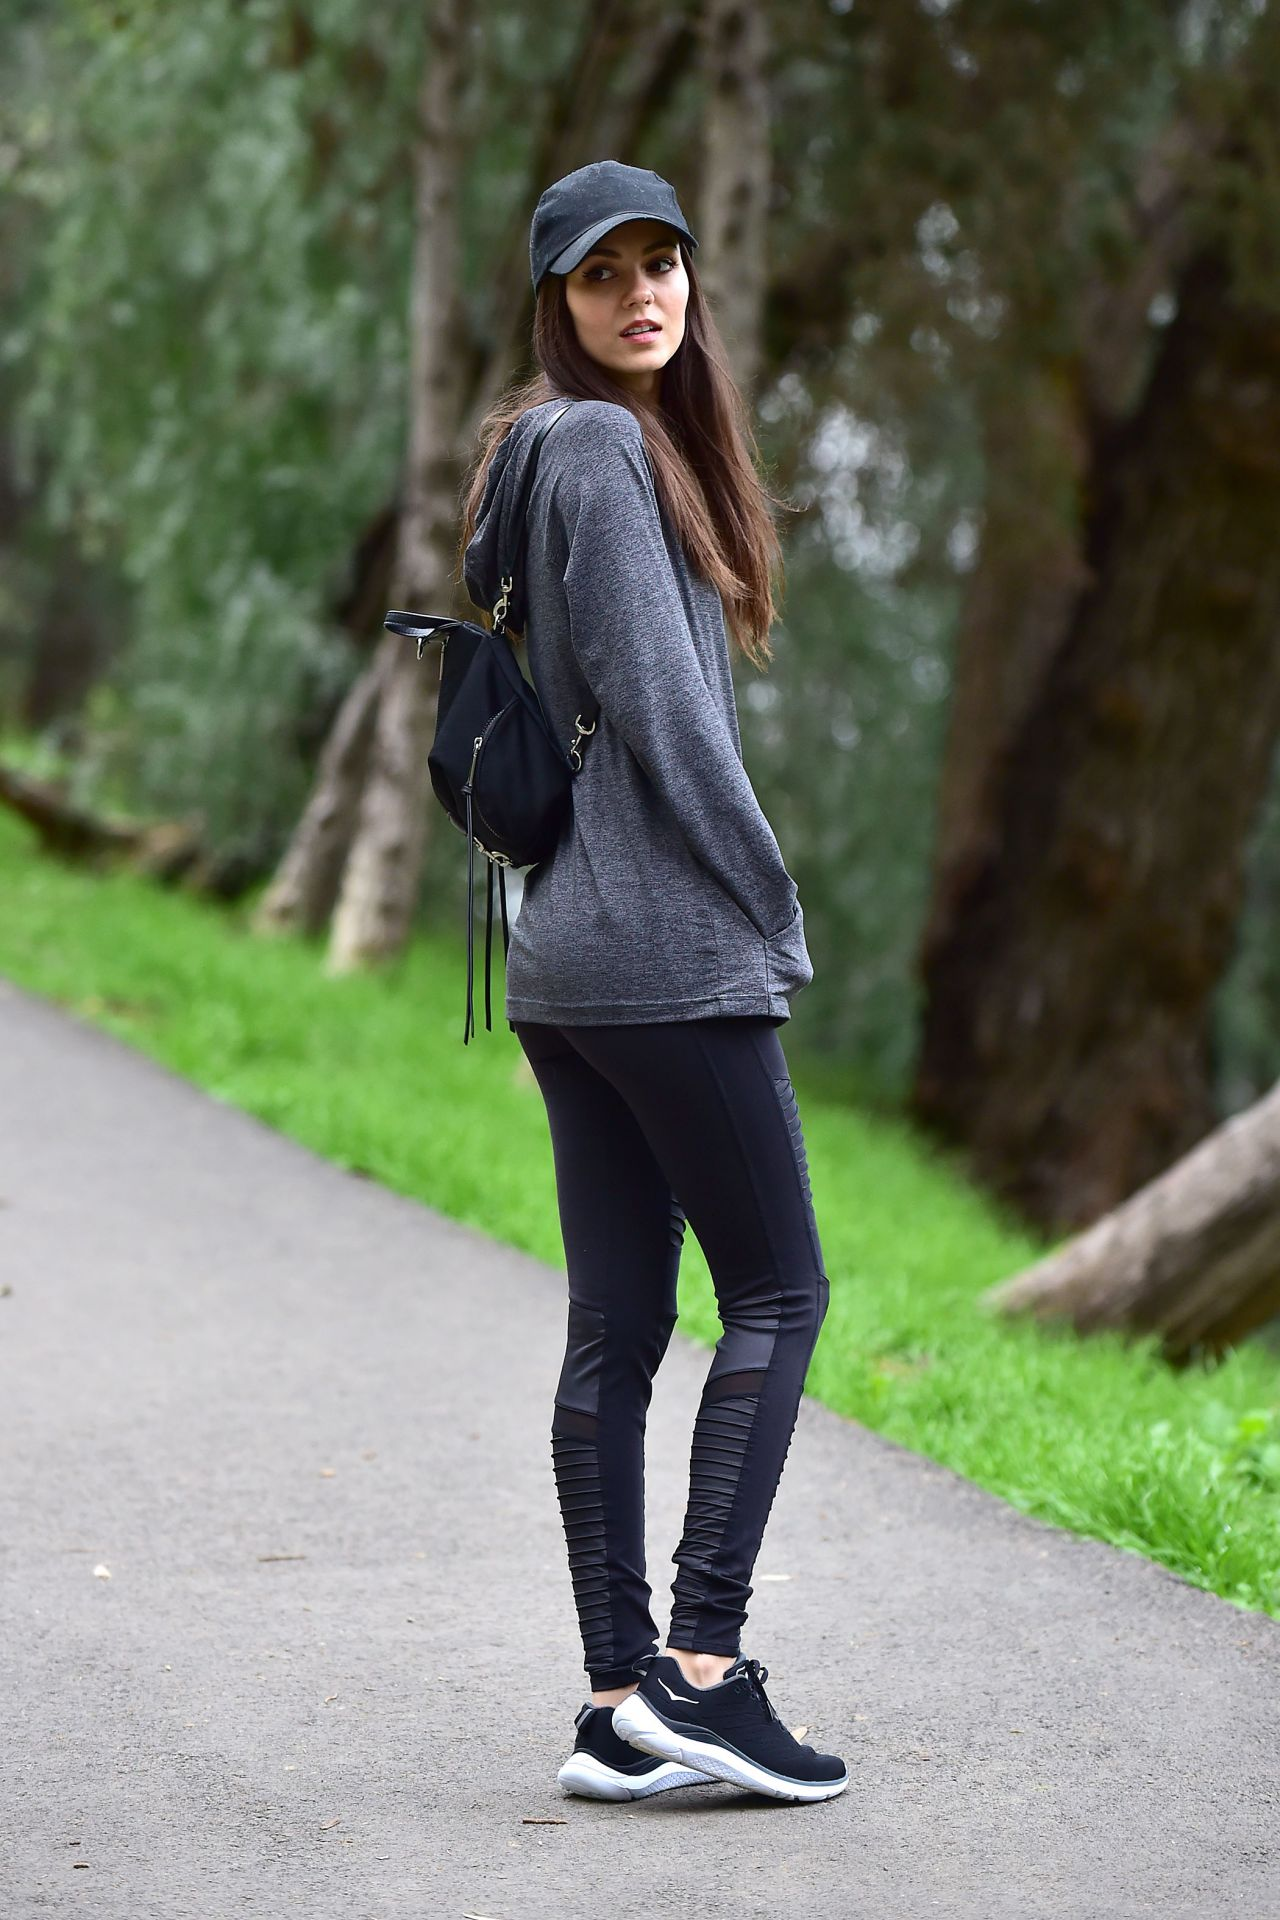 Victoria Justice Out Hiking In Los Angeles 02 04 2019